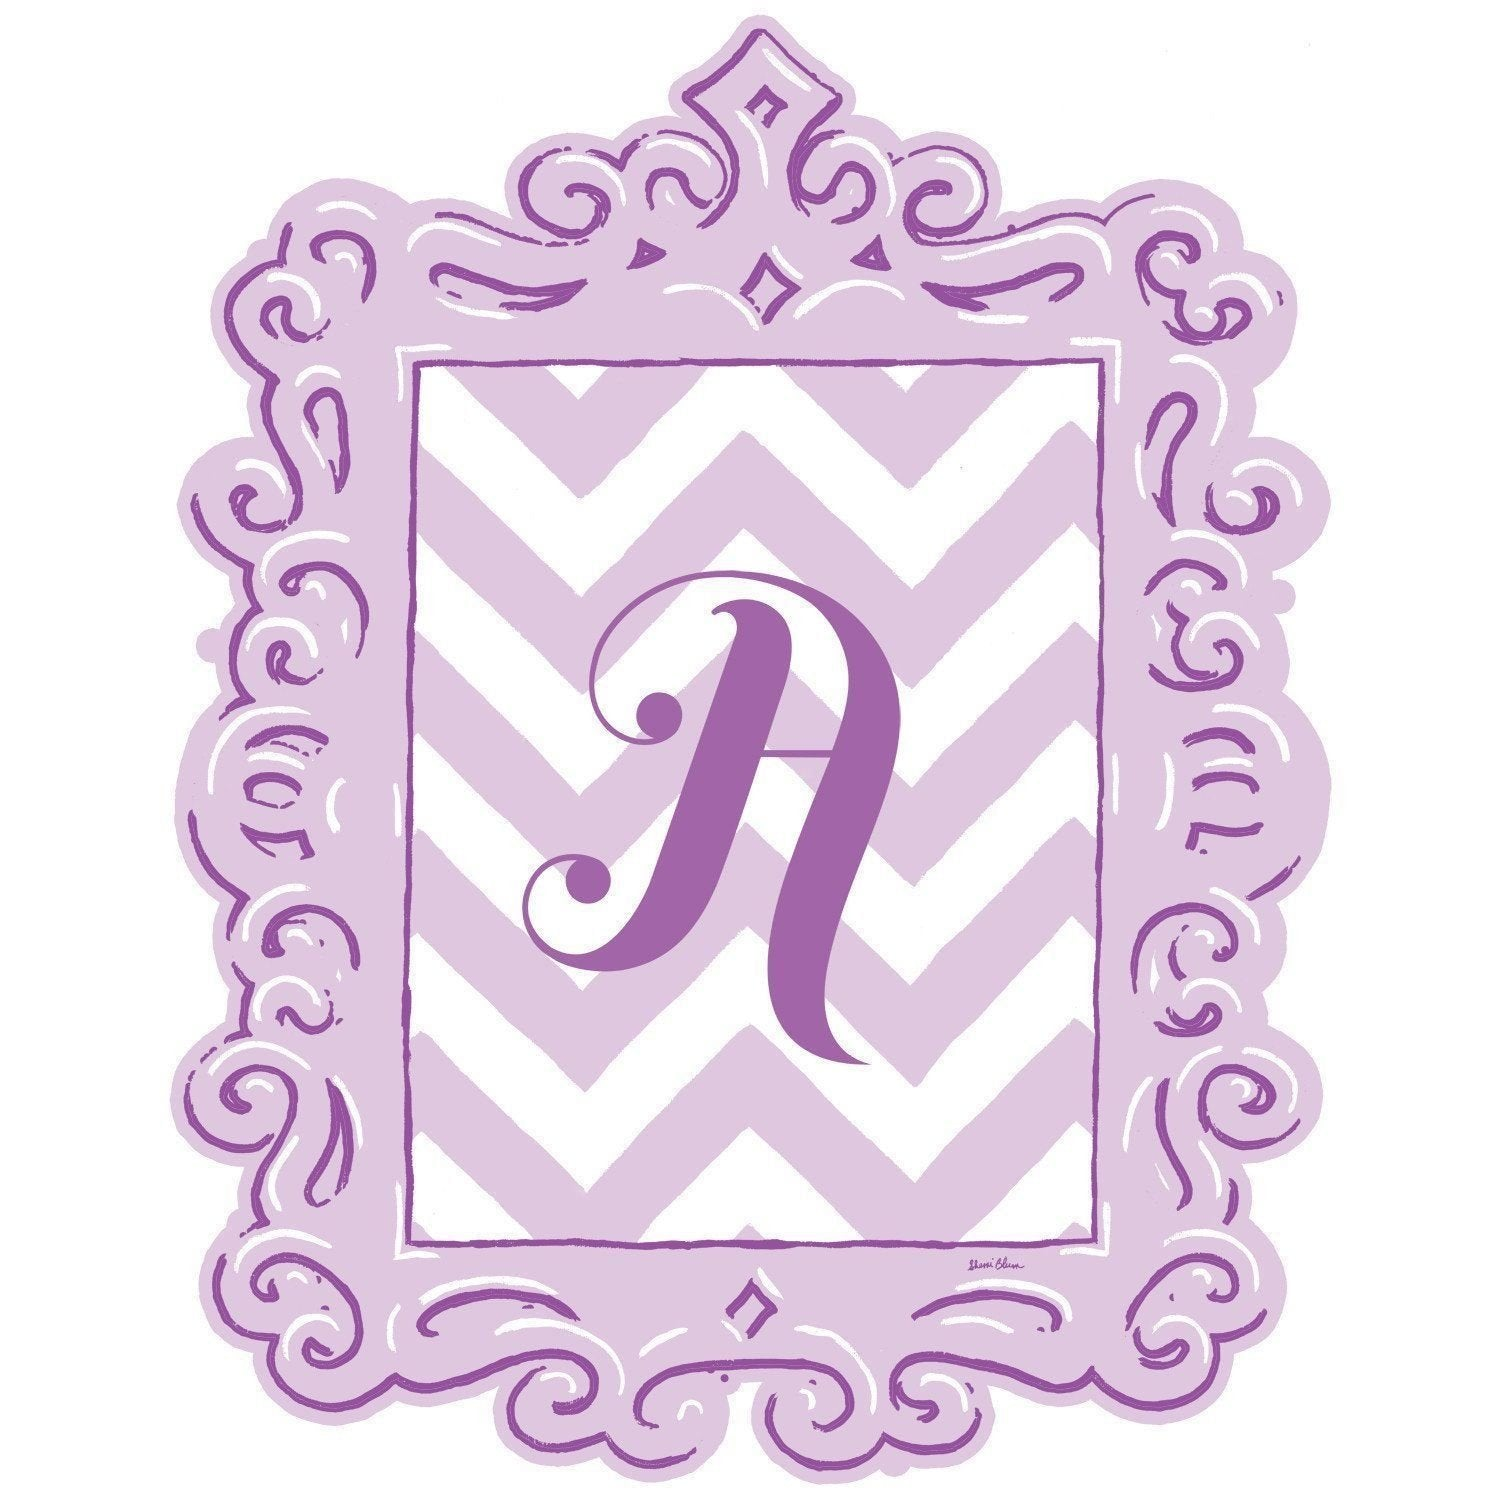 Framed Chevron Monogram Wall Decal in Lavender-Decals-Default-Jack and Jill Boutique